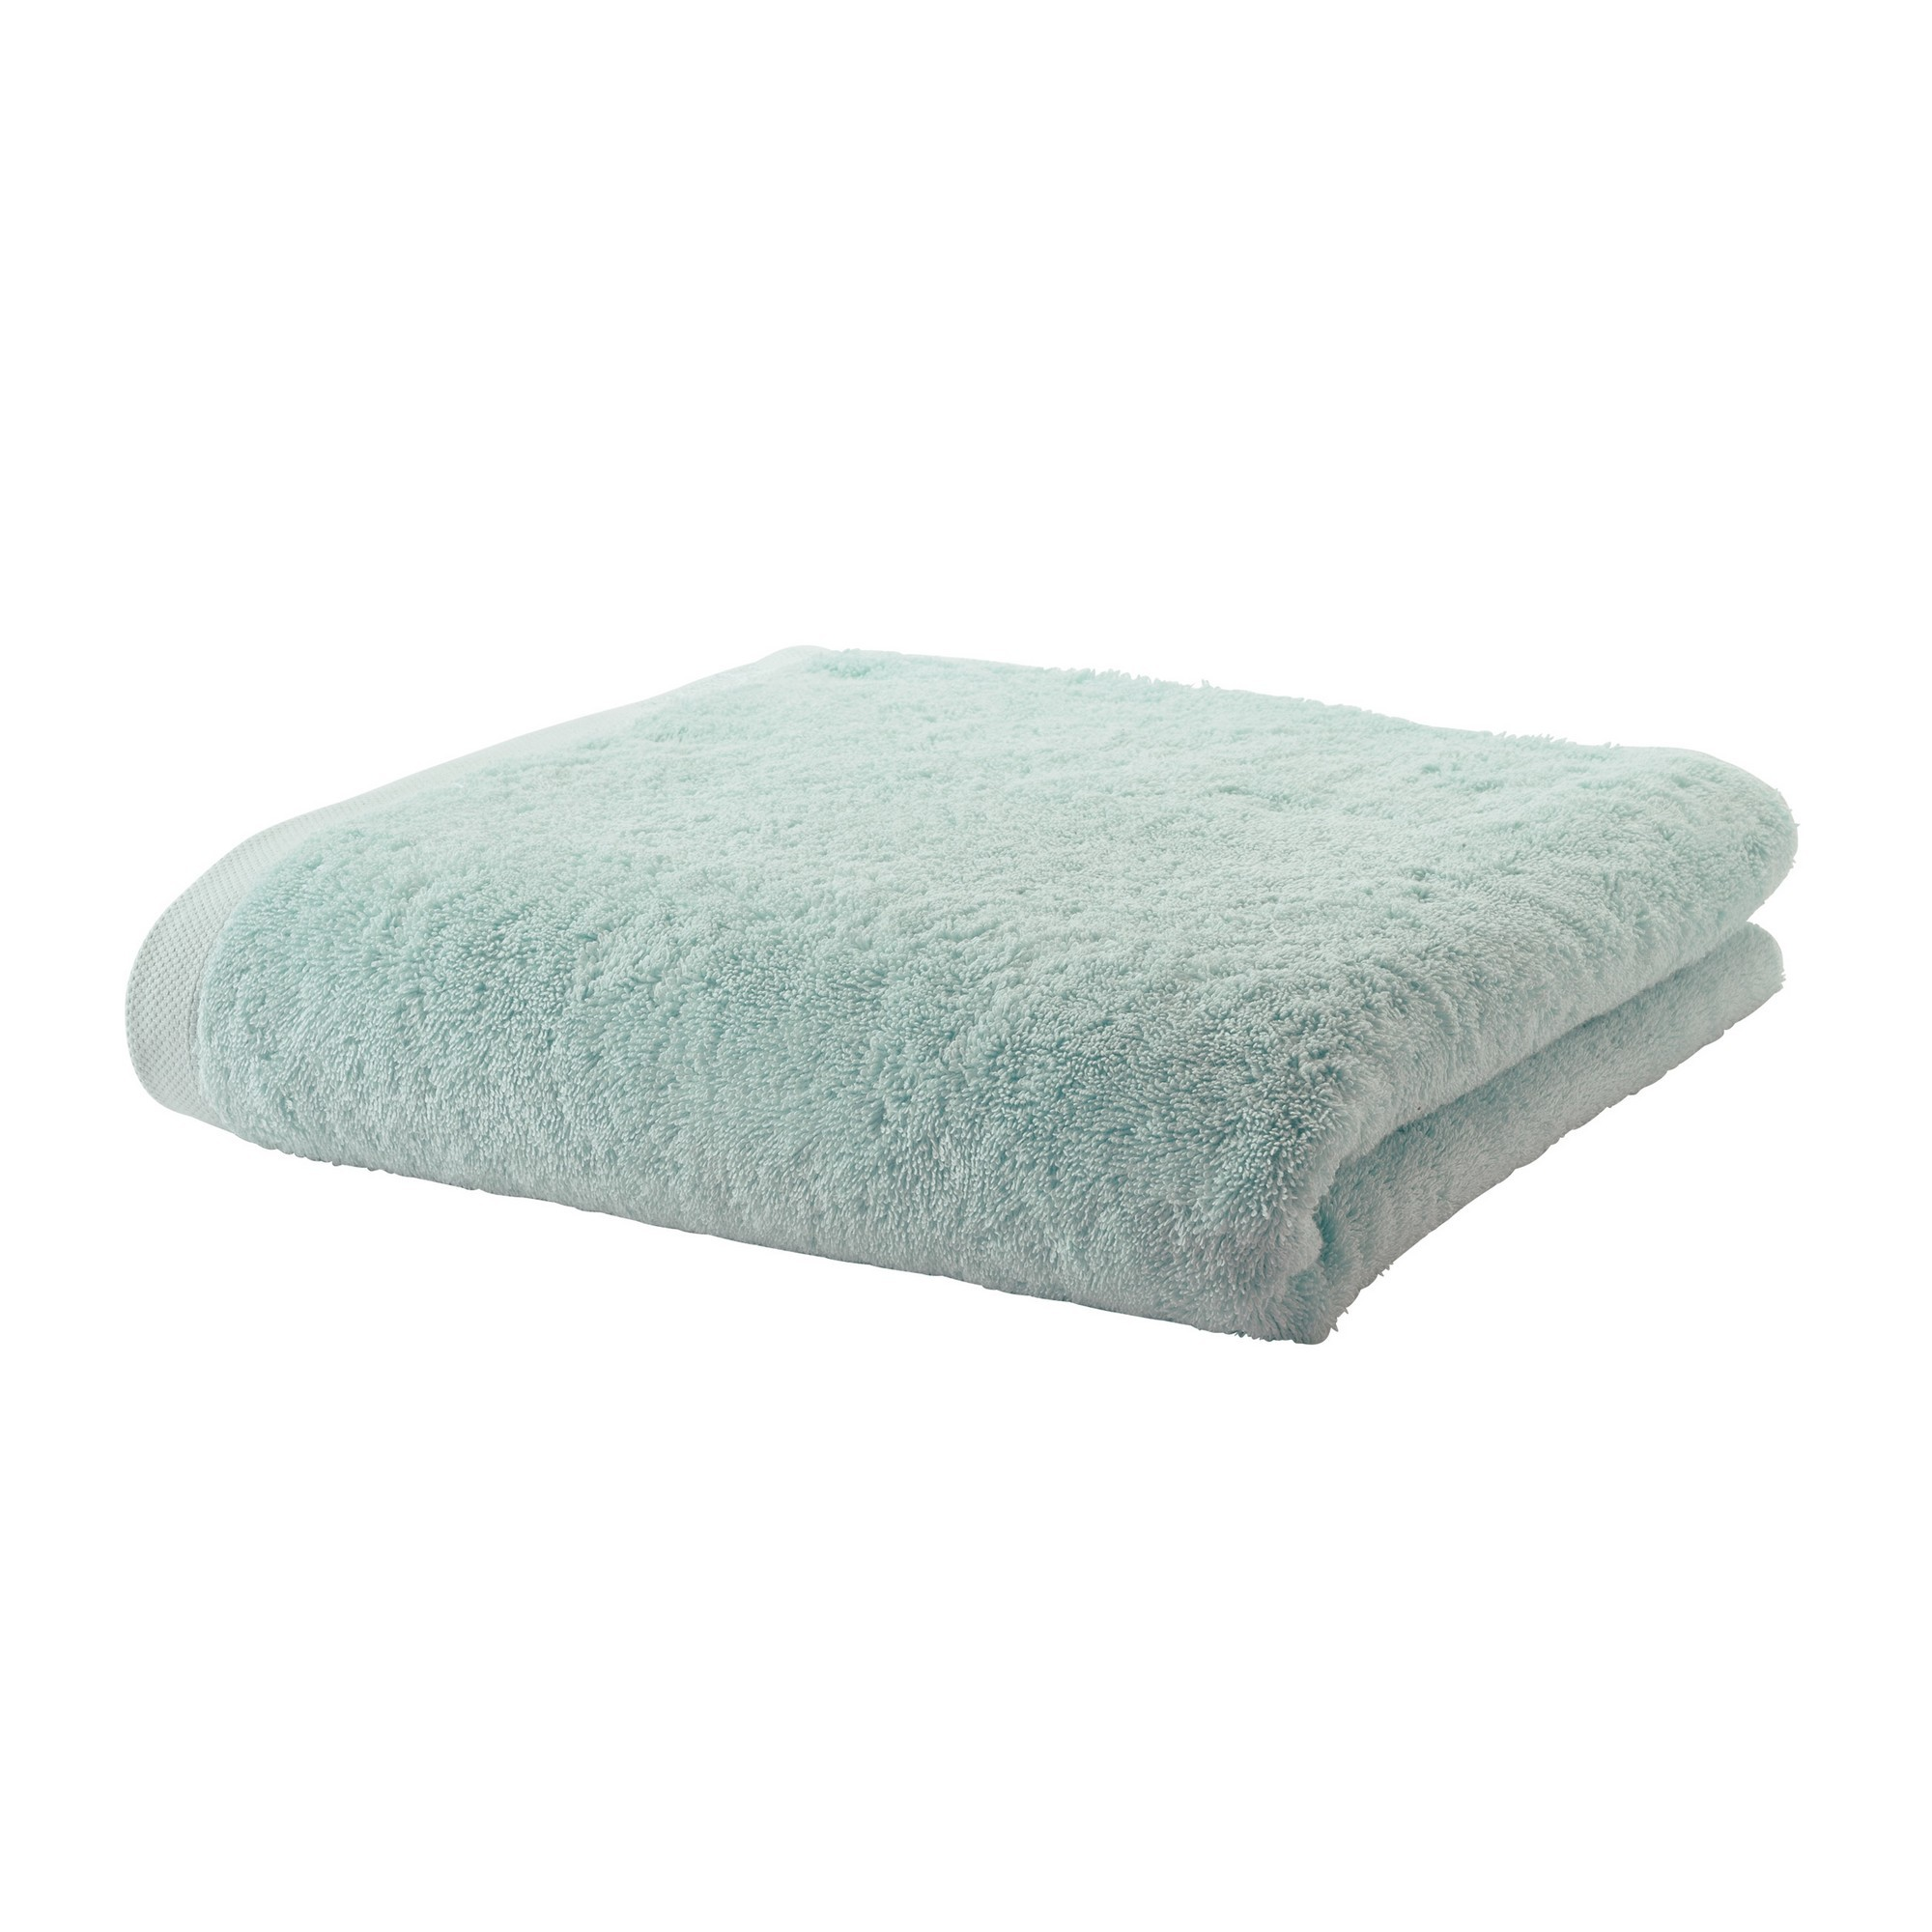 Aquanova London Egyptian Cotton Bath Towel, Mist